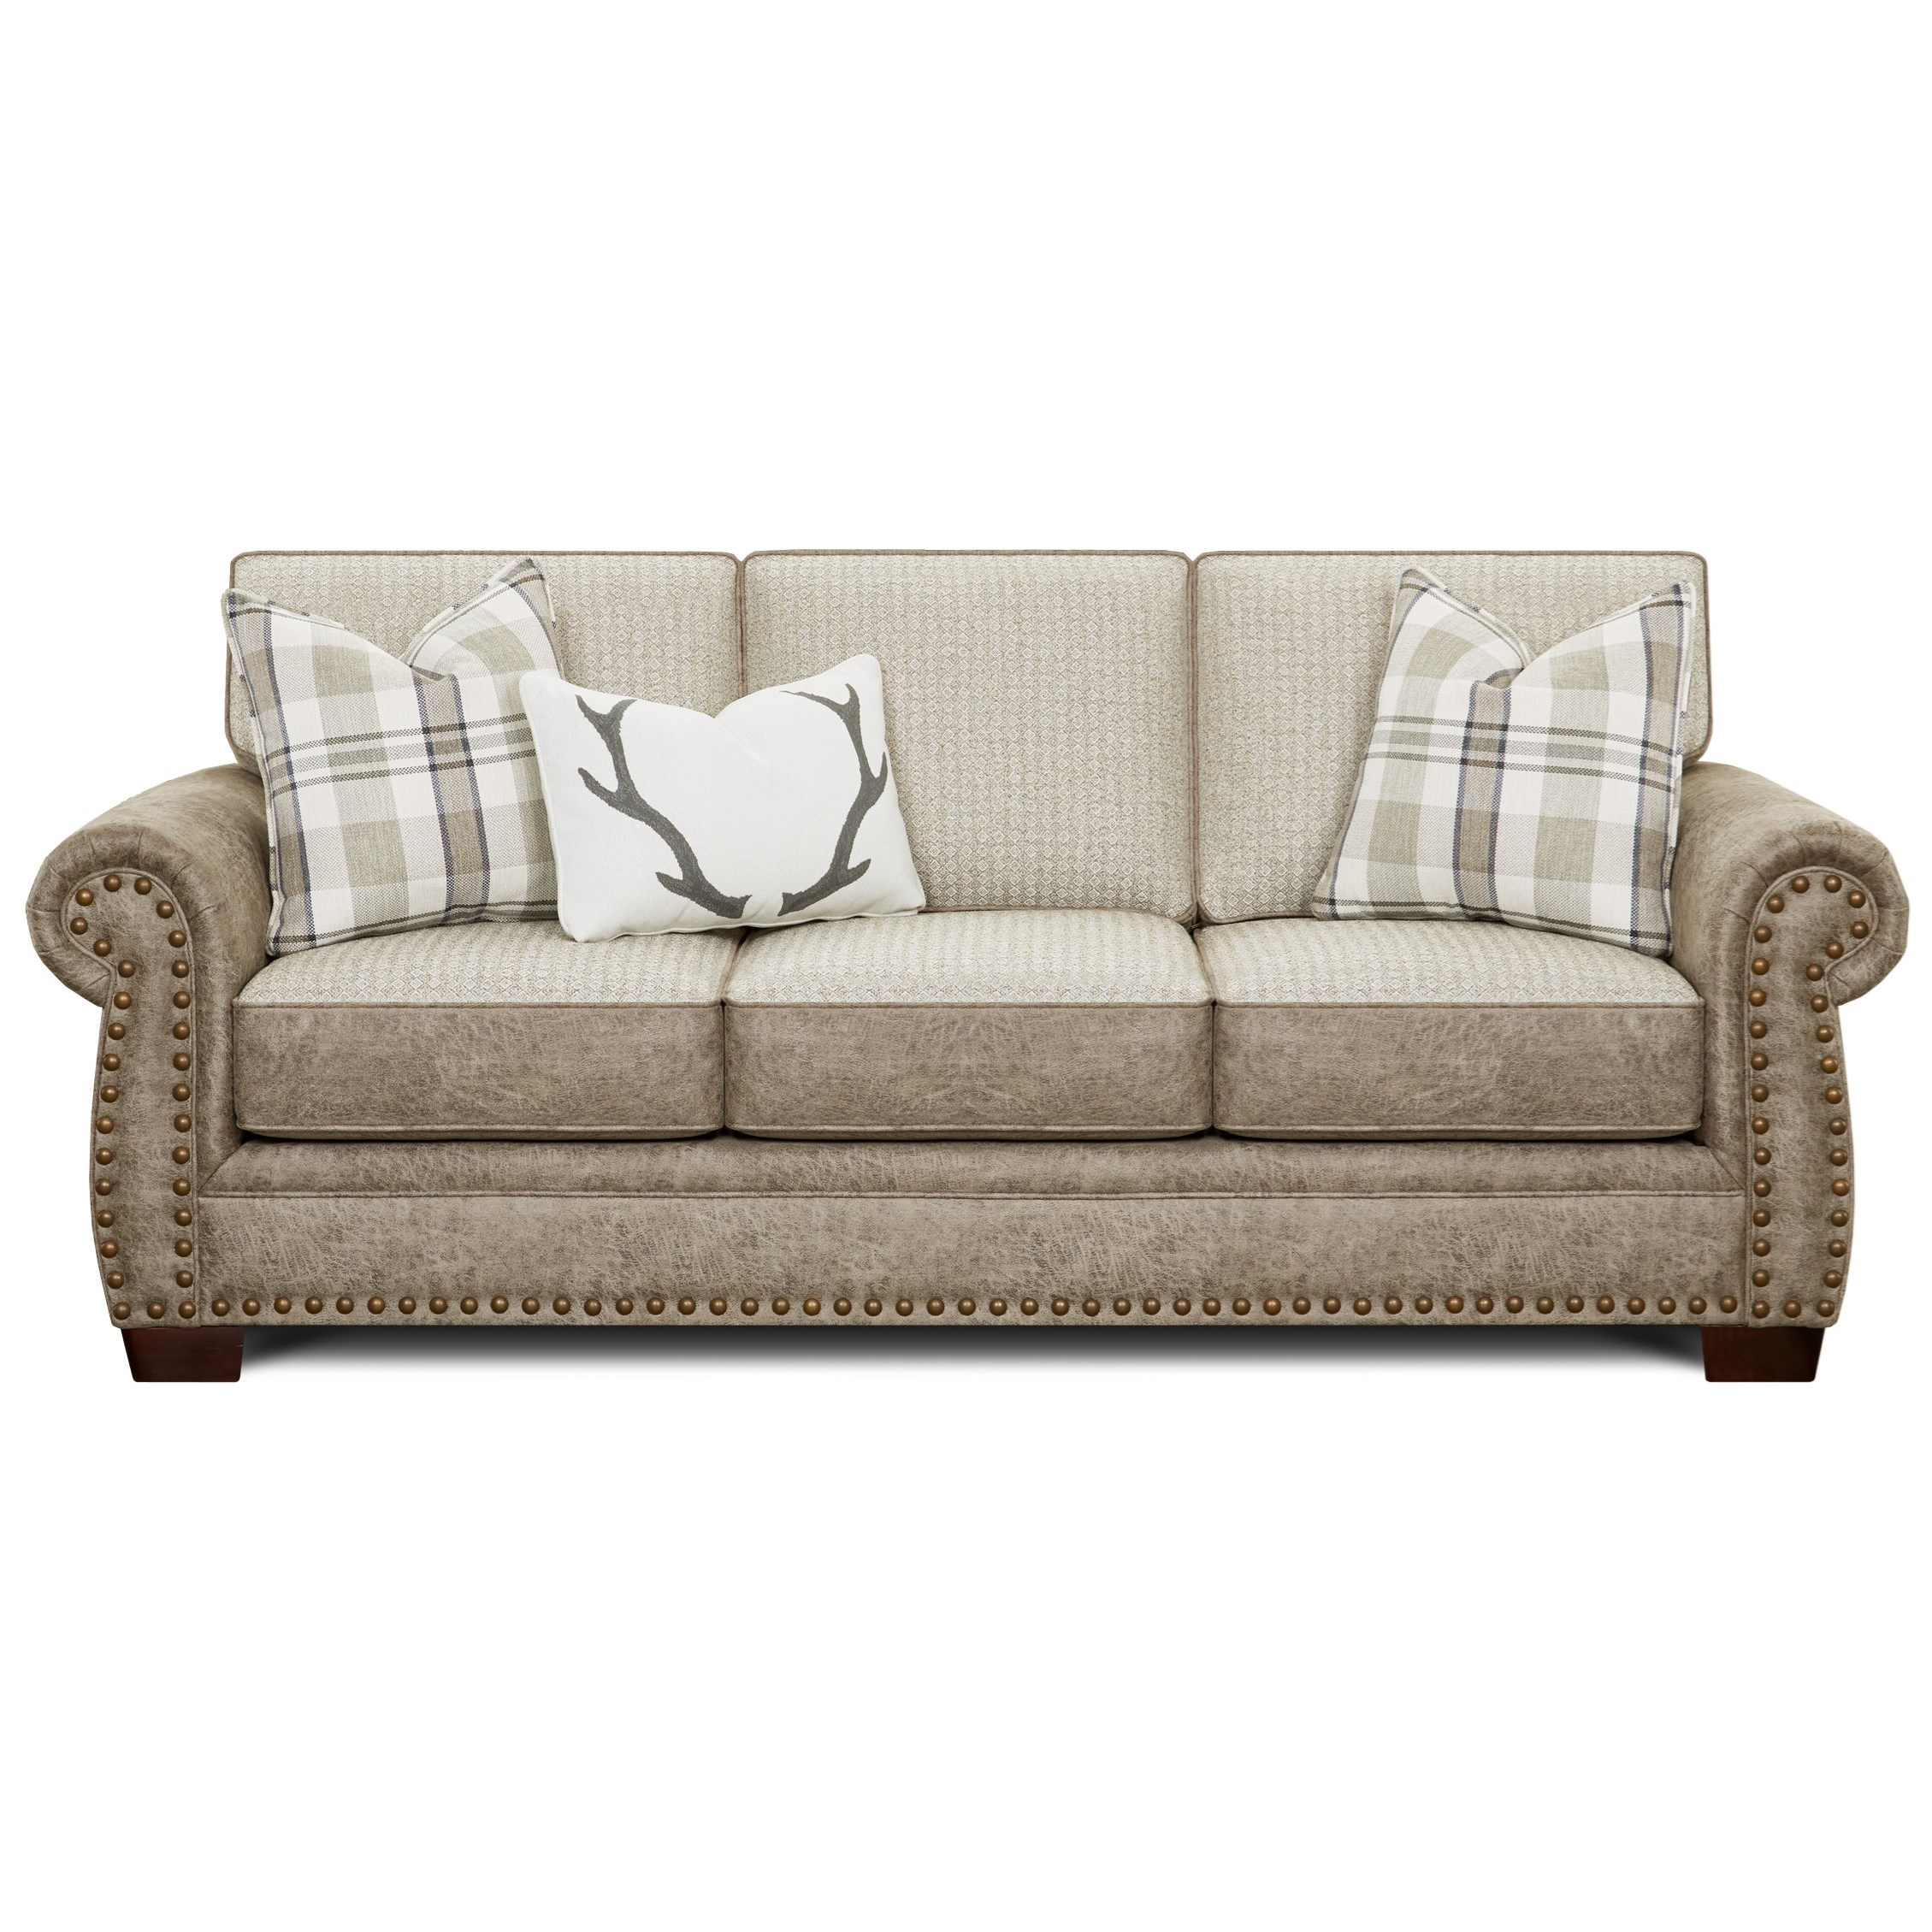 22-00 Sleeper Sofa by Fusion Furniture at Miller Waldrop Furniture and Decor